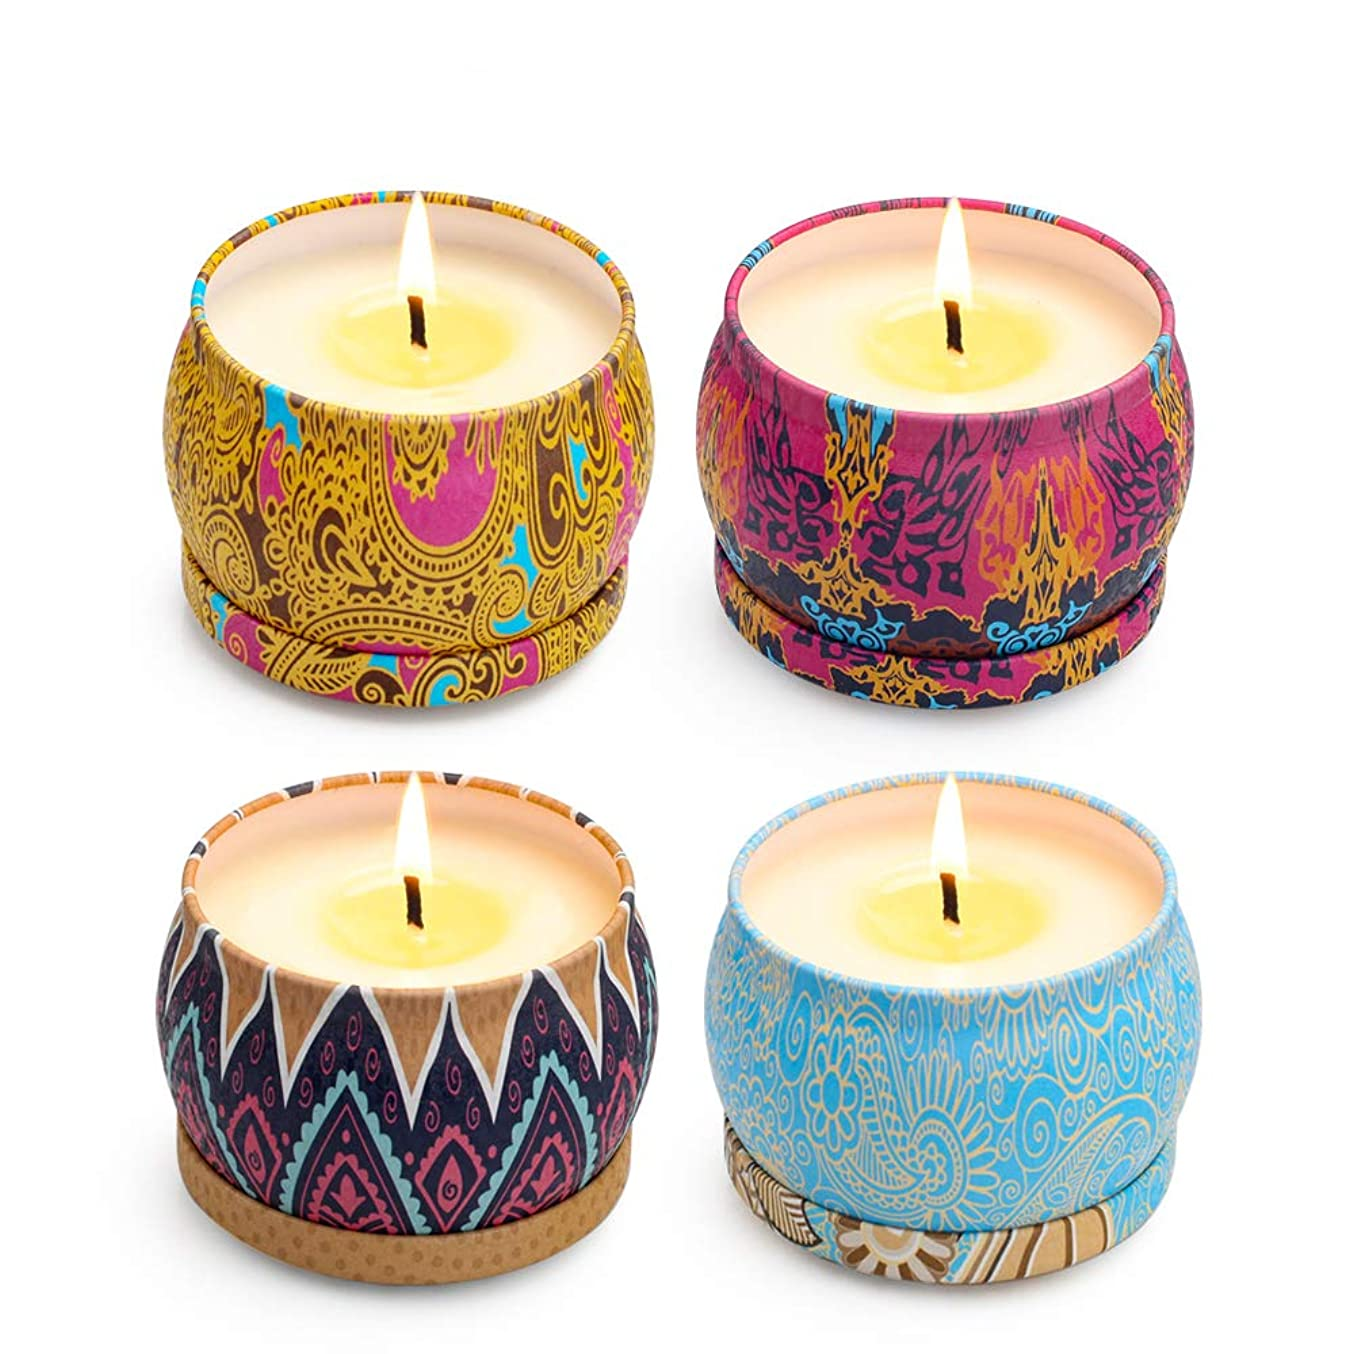 Scented Candles Set, Natural Soy Wax Fragrance Candle Boxed Gift Set Travel Tin Candles, Lemon, Lavender, Mediterranean Fig, and Spring for Aromatherapy, Stress Relief - 4 Pack (4.4oz each)